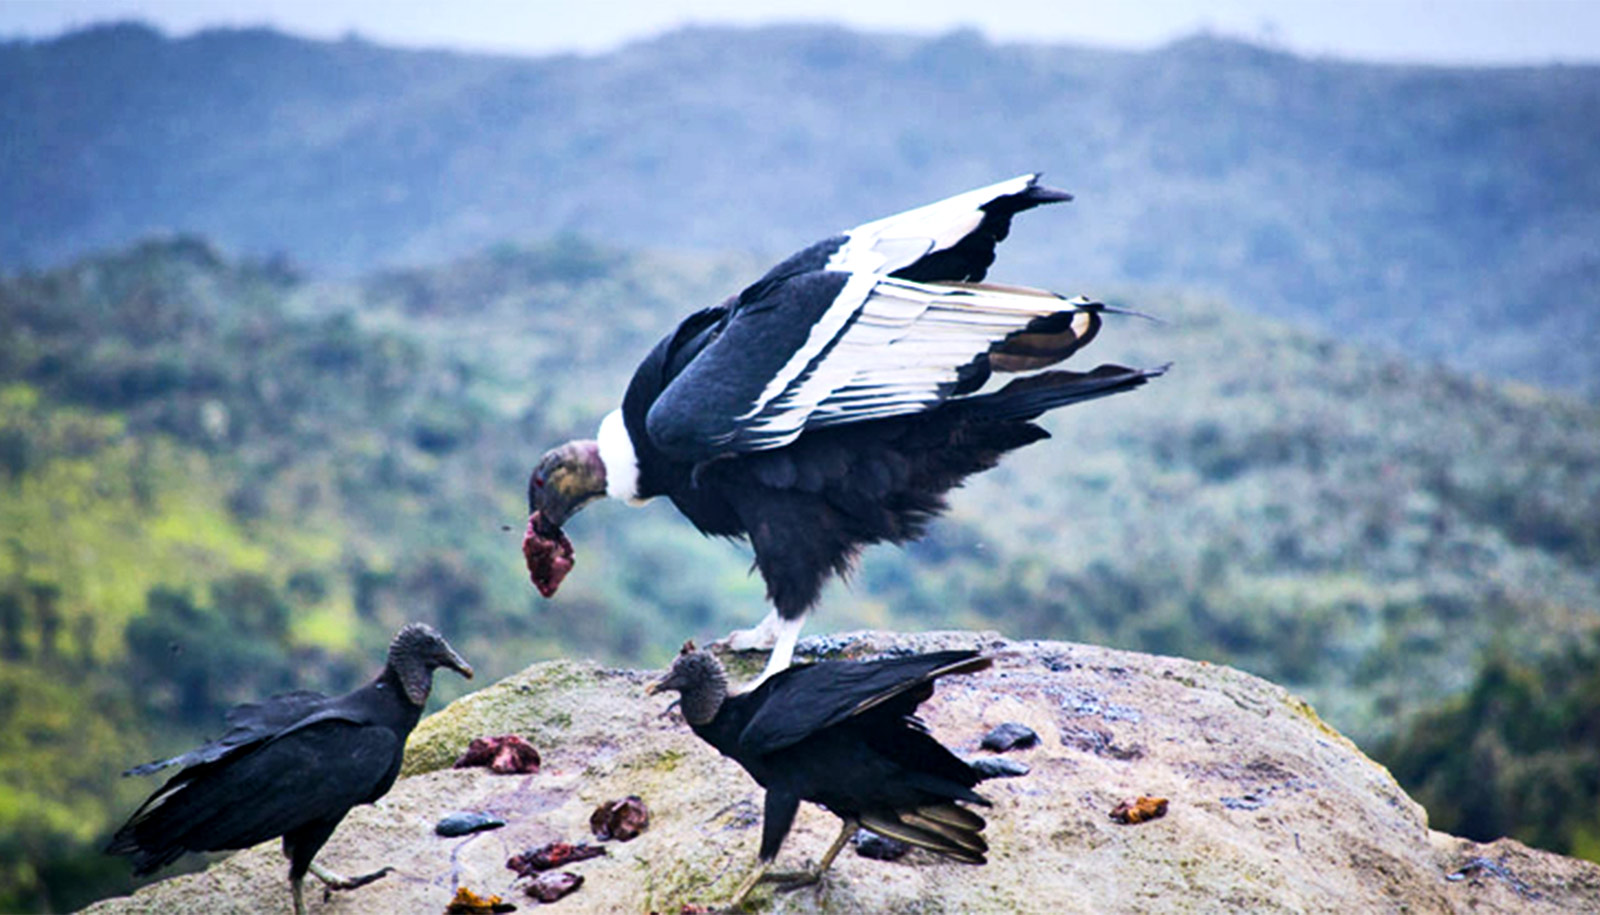 The large black birds eat meat while standing on a rock above a valley with mountains in the background